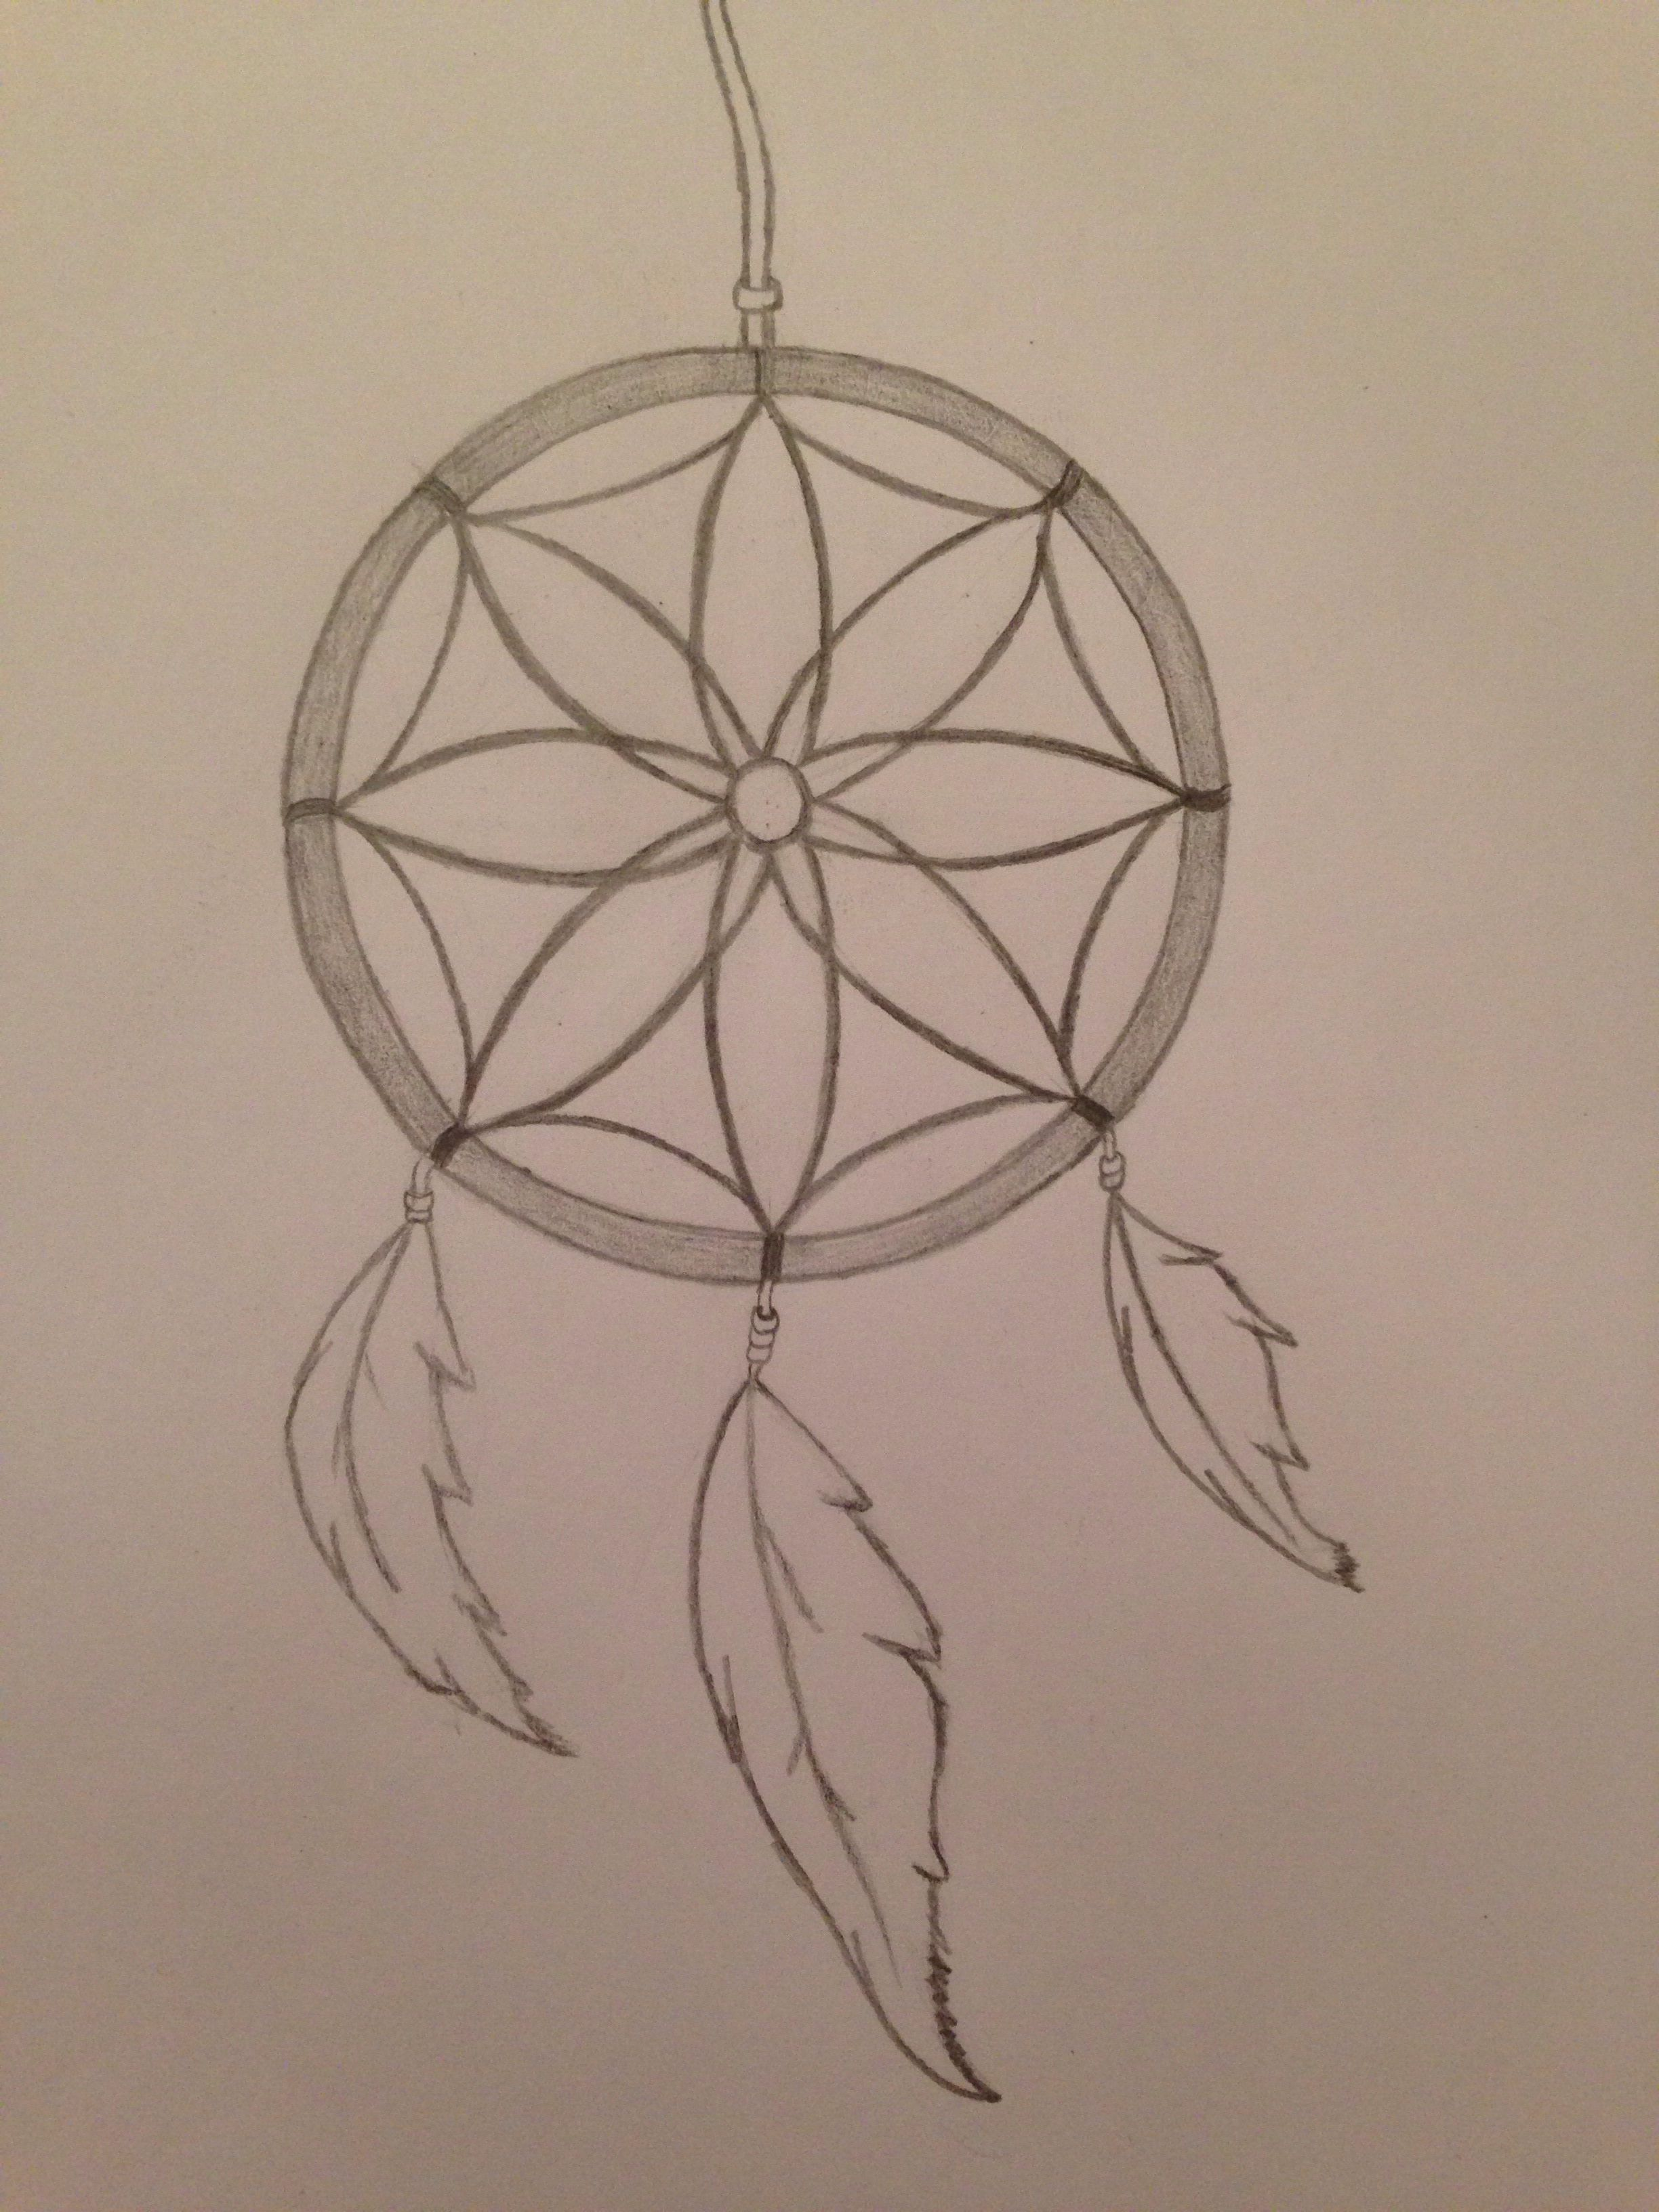 Simple Dream Catcher Drawing : simple, dream, catcher, drawing, Drawn, Dream, Catcher, Drawing,, Dreamcatcher, Tattoo, Small